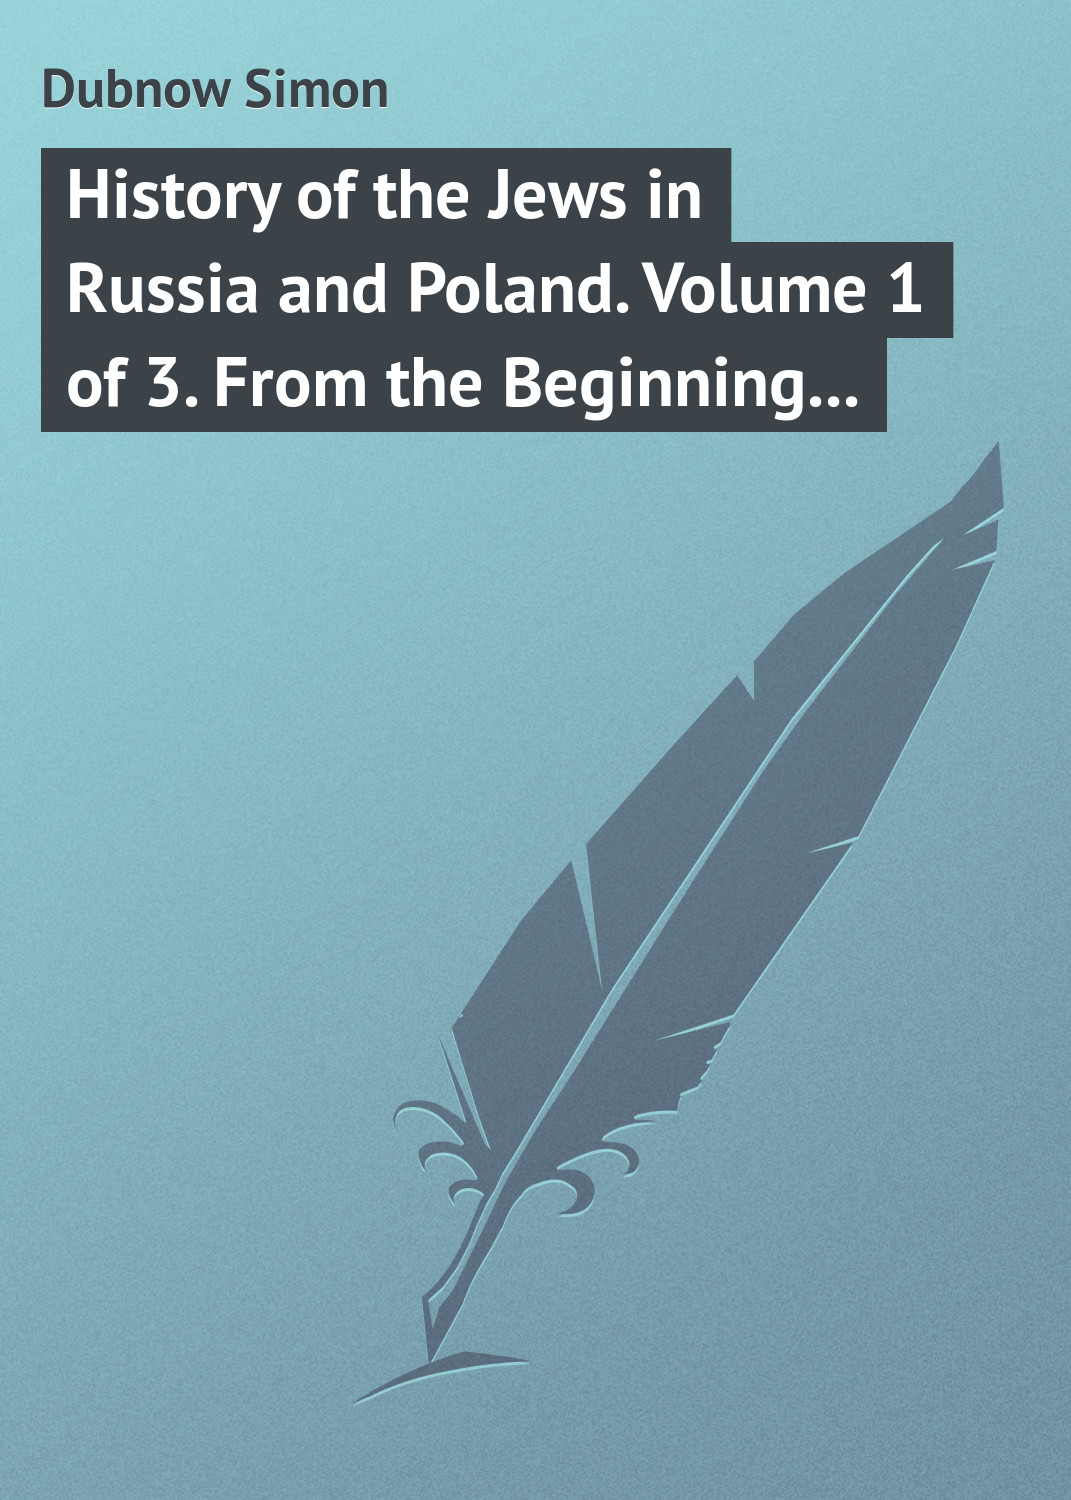 Dubnow Simon History of the Jews in Russia and Poland. Volume 1 of 3. From the Beginning until the Death of Alexander I (1825) simon harris beginning algorithms